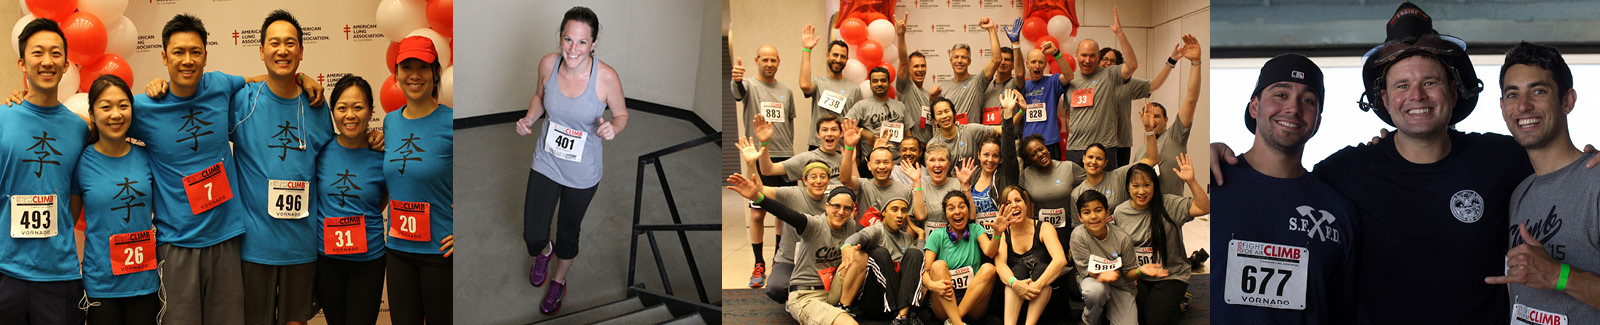 Fight For Air Climb - San Francisco. Step Up to the Challenge!